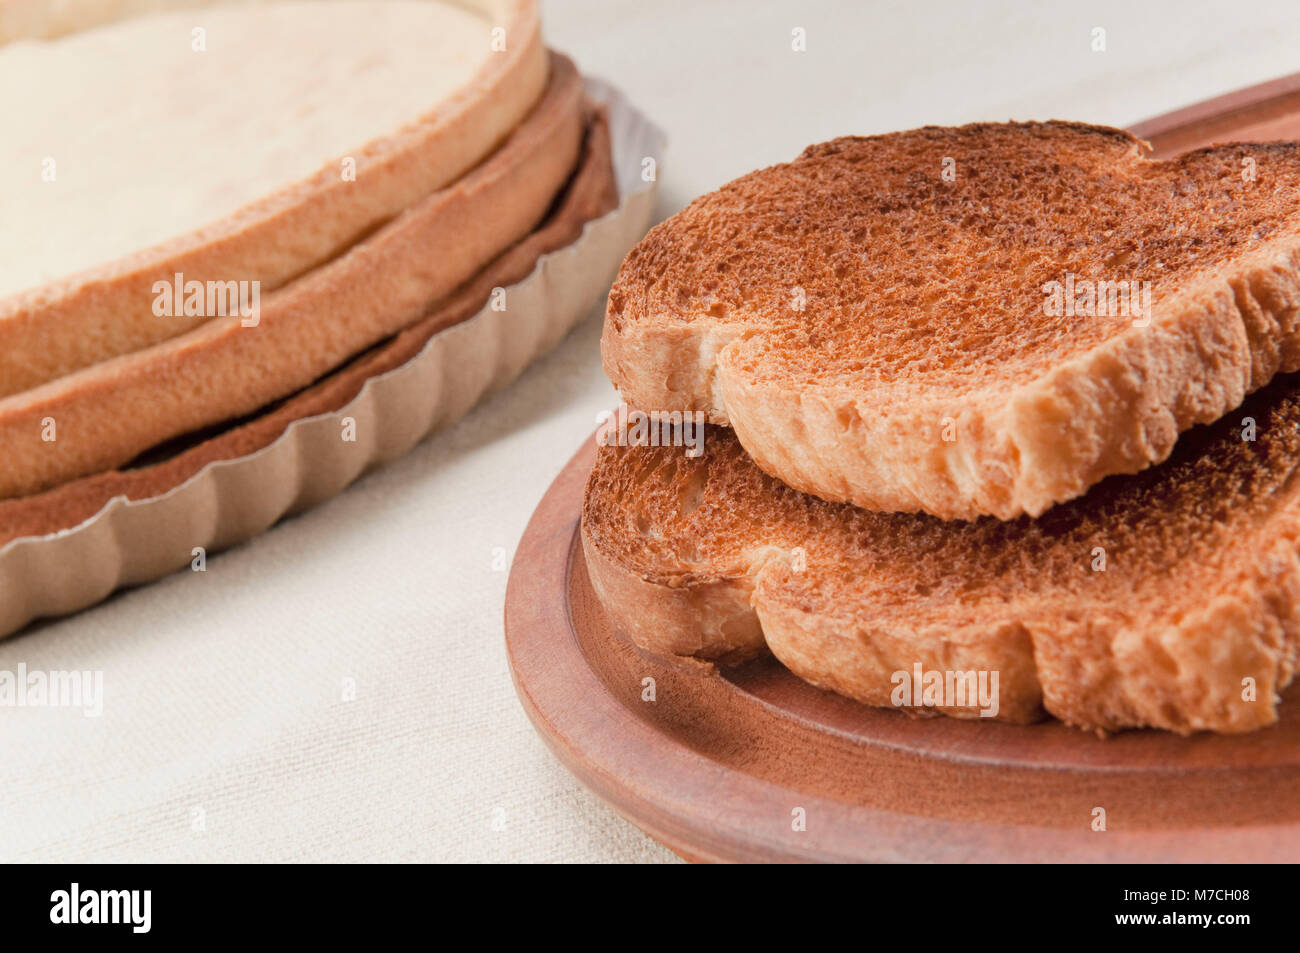 Close-up of breads with tart bases - Stock Image